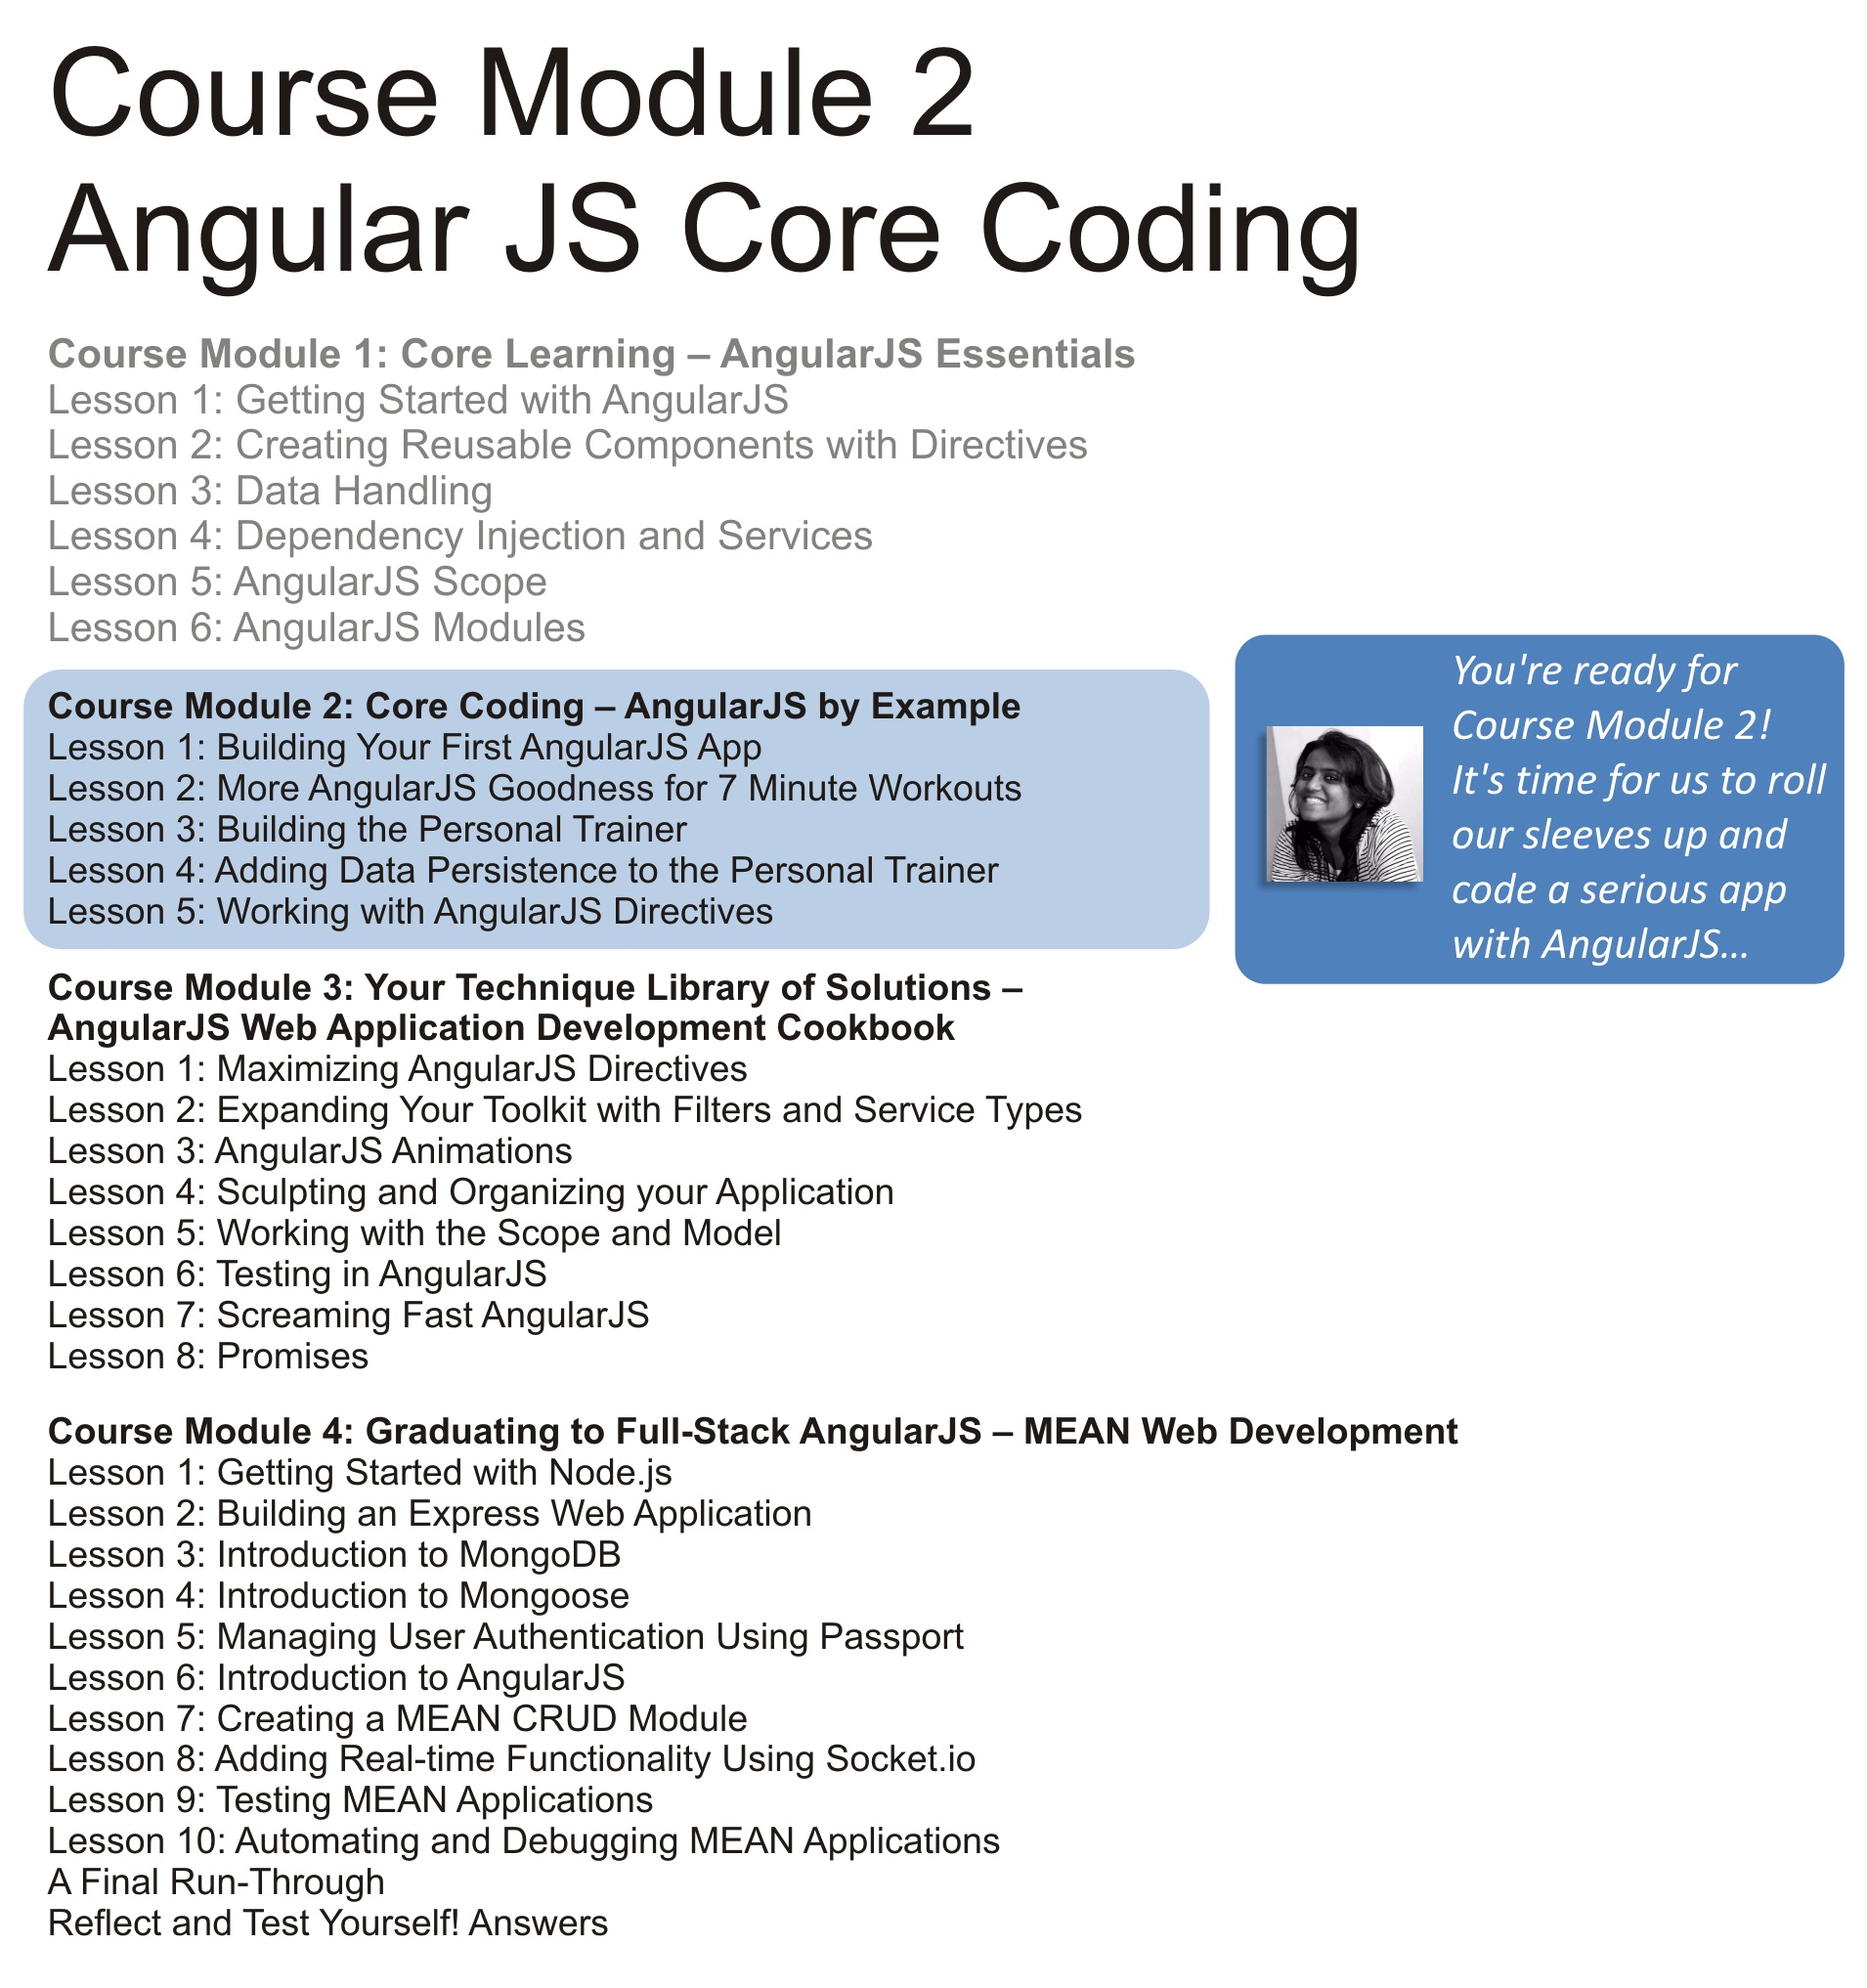 Core Coding – AngularJS By Example